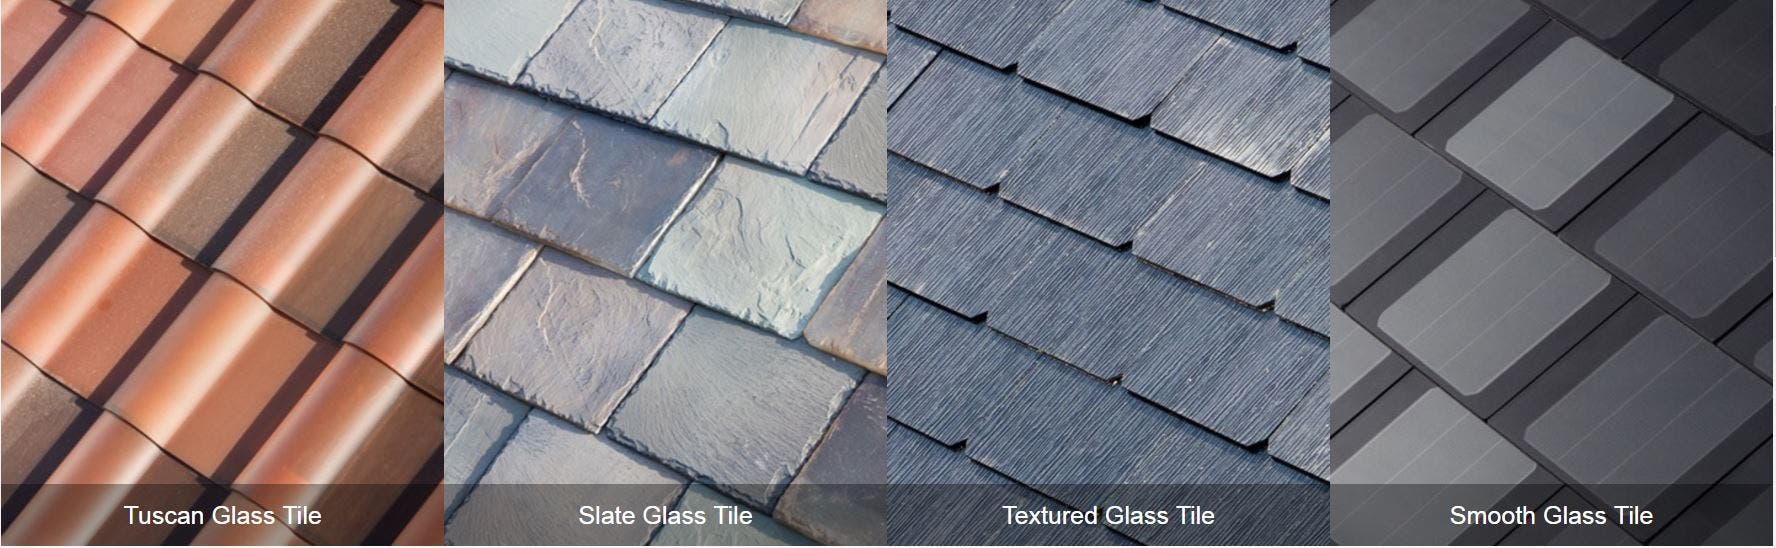 Tesla Solar Roof Order >> Tesla Solar Roof Orders Begin On May 10 Will Be Available Worldwide